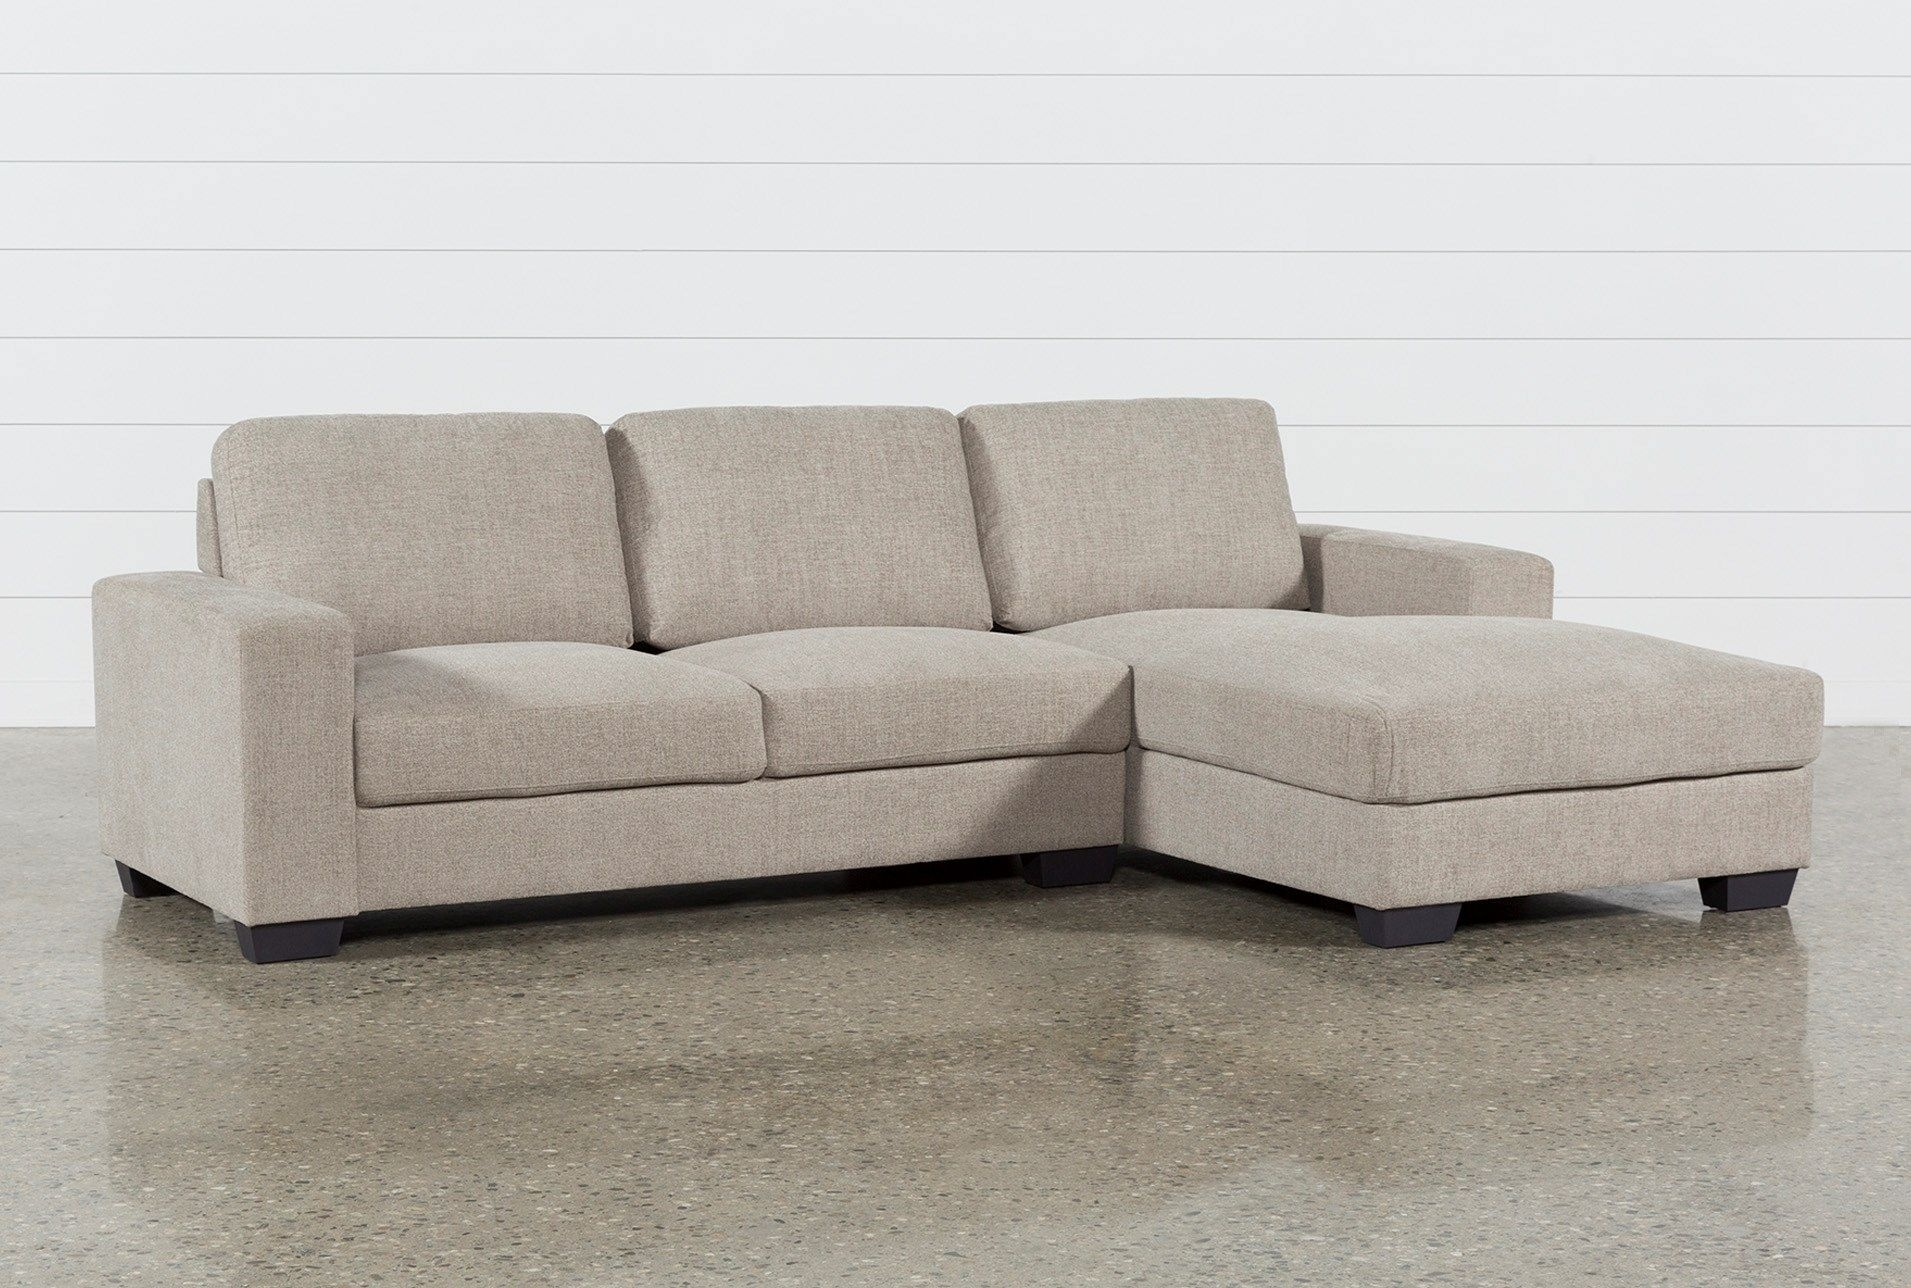 Jobs Oat 2 Piece Sectional With Right Facing Chaise In 2018 Within Arrowmask 2 Piece Sectionals With Sleeper & Left Facing Chaise (Image 10 of 25)